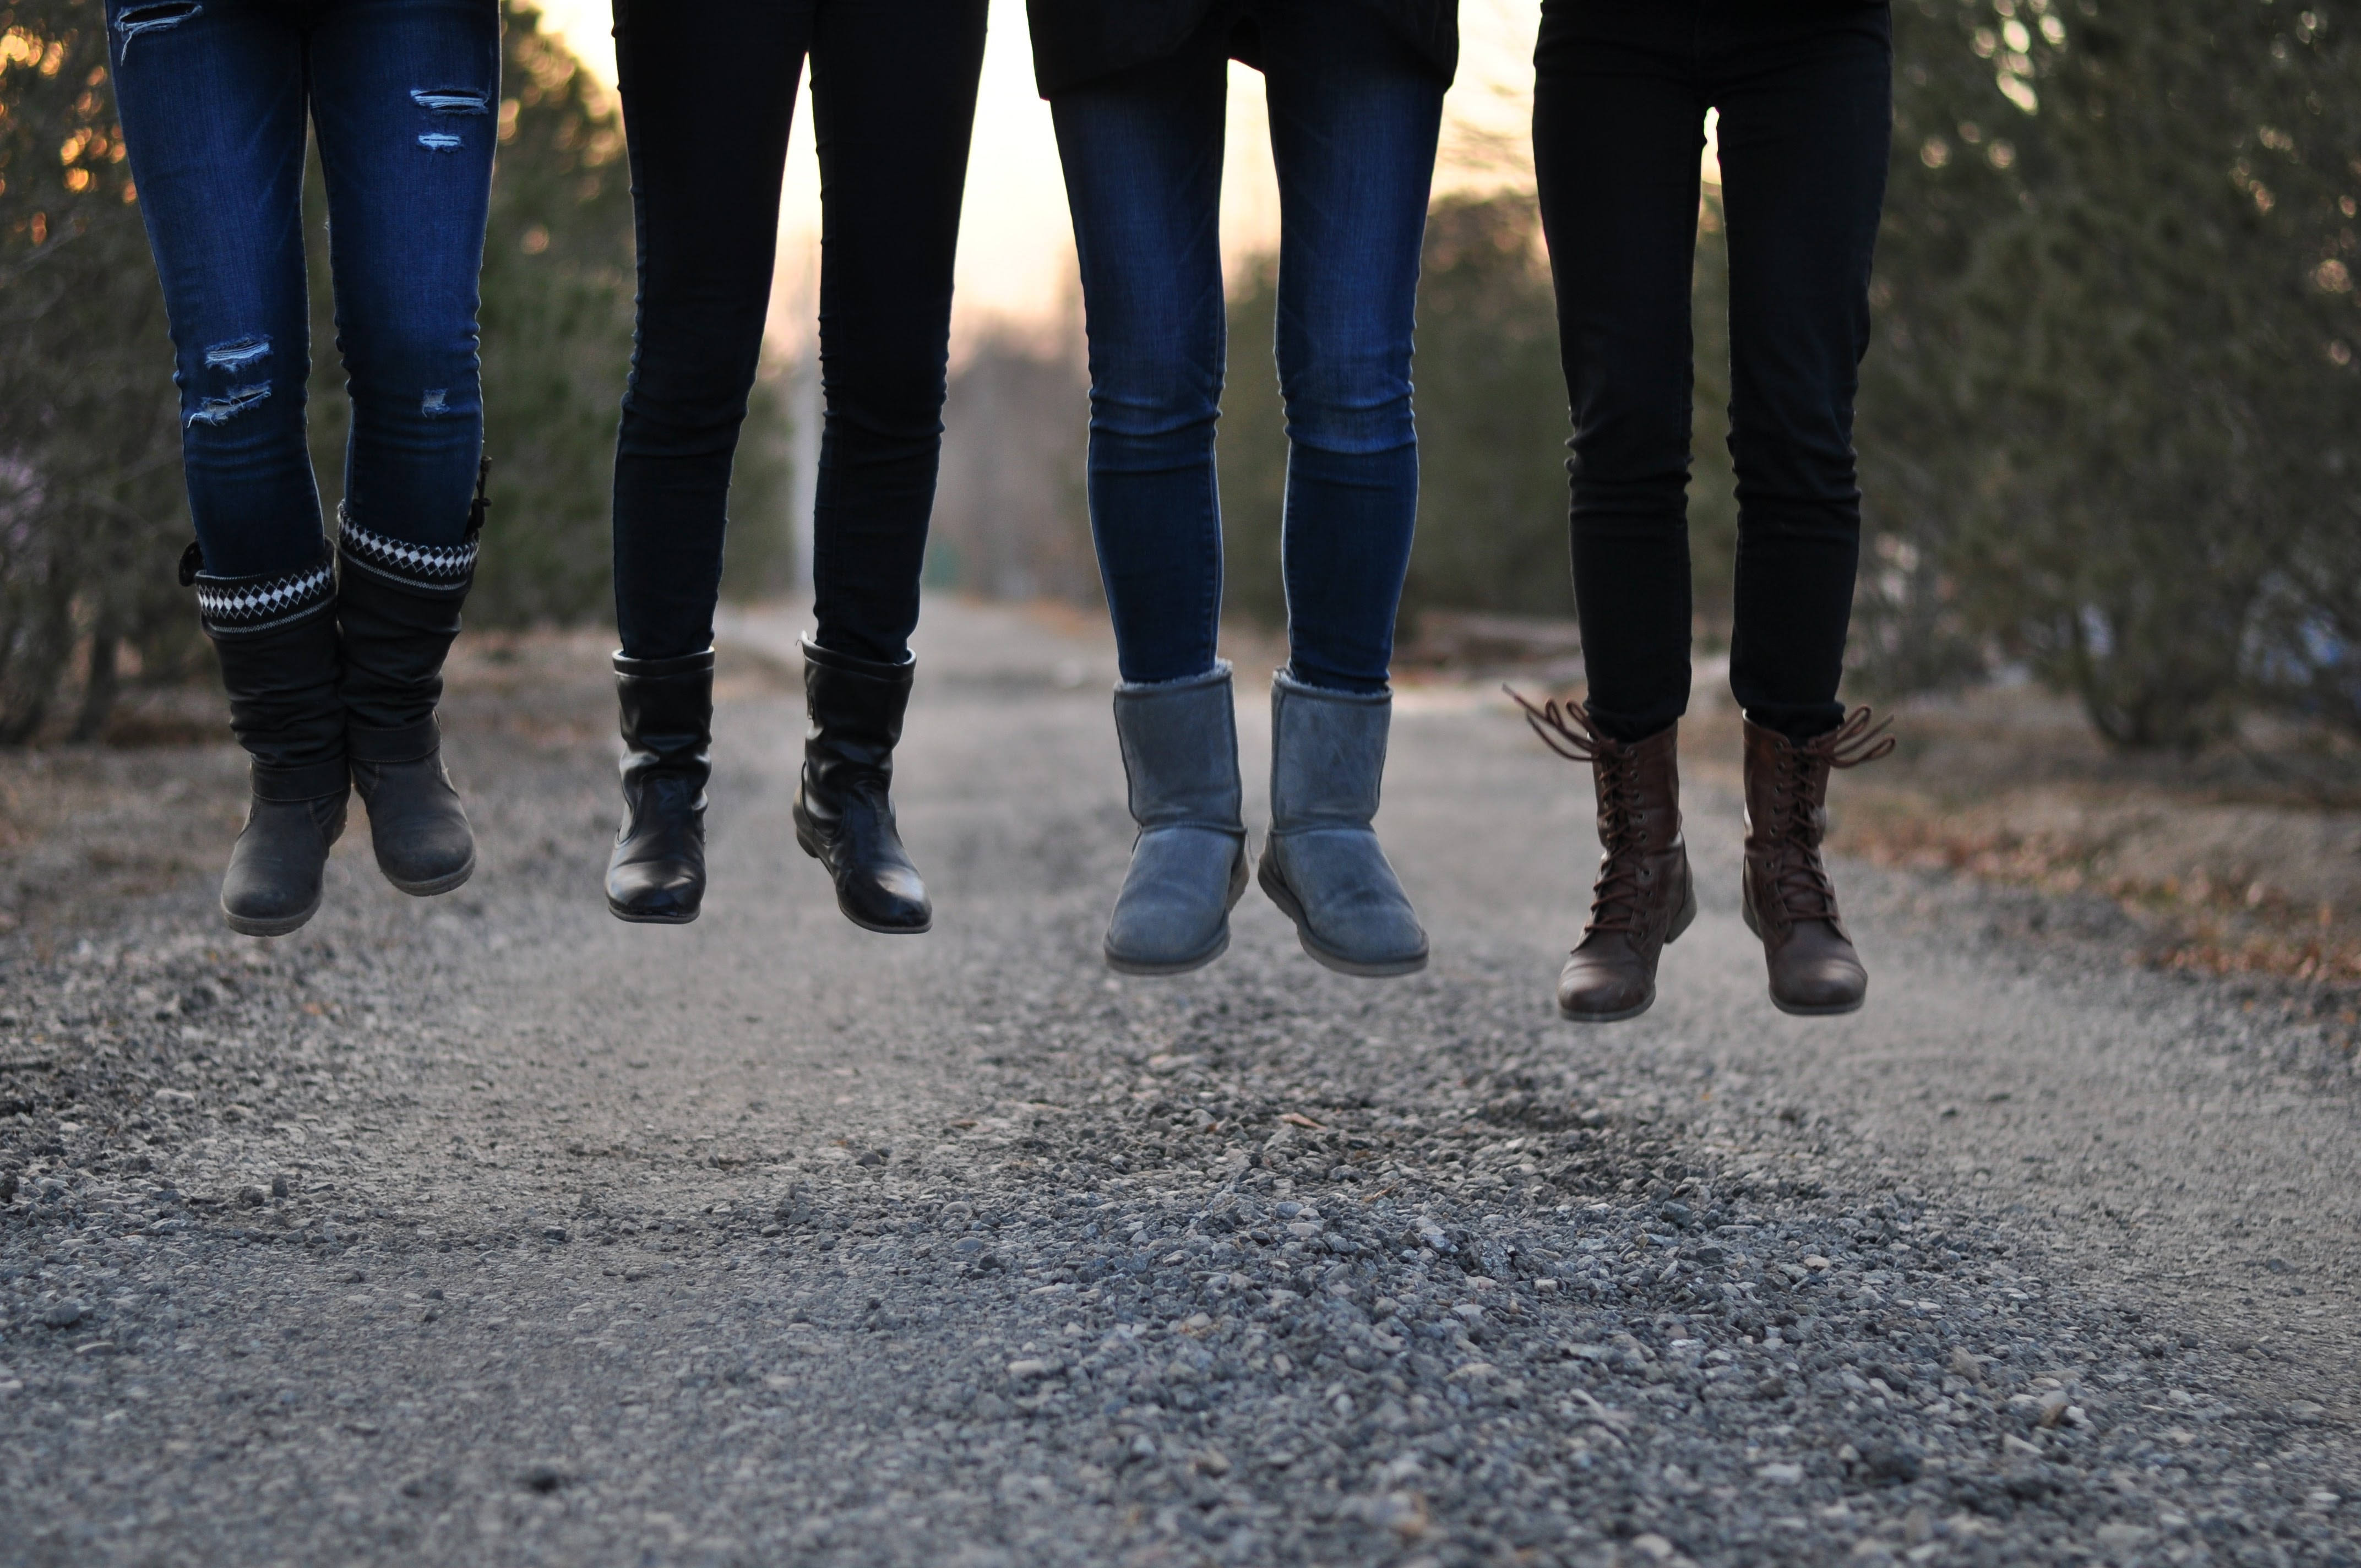 Four people jumping while wearing different types of boots